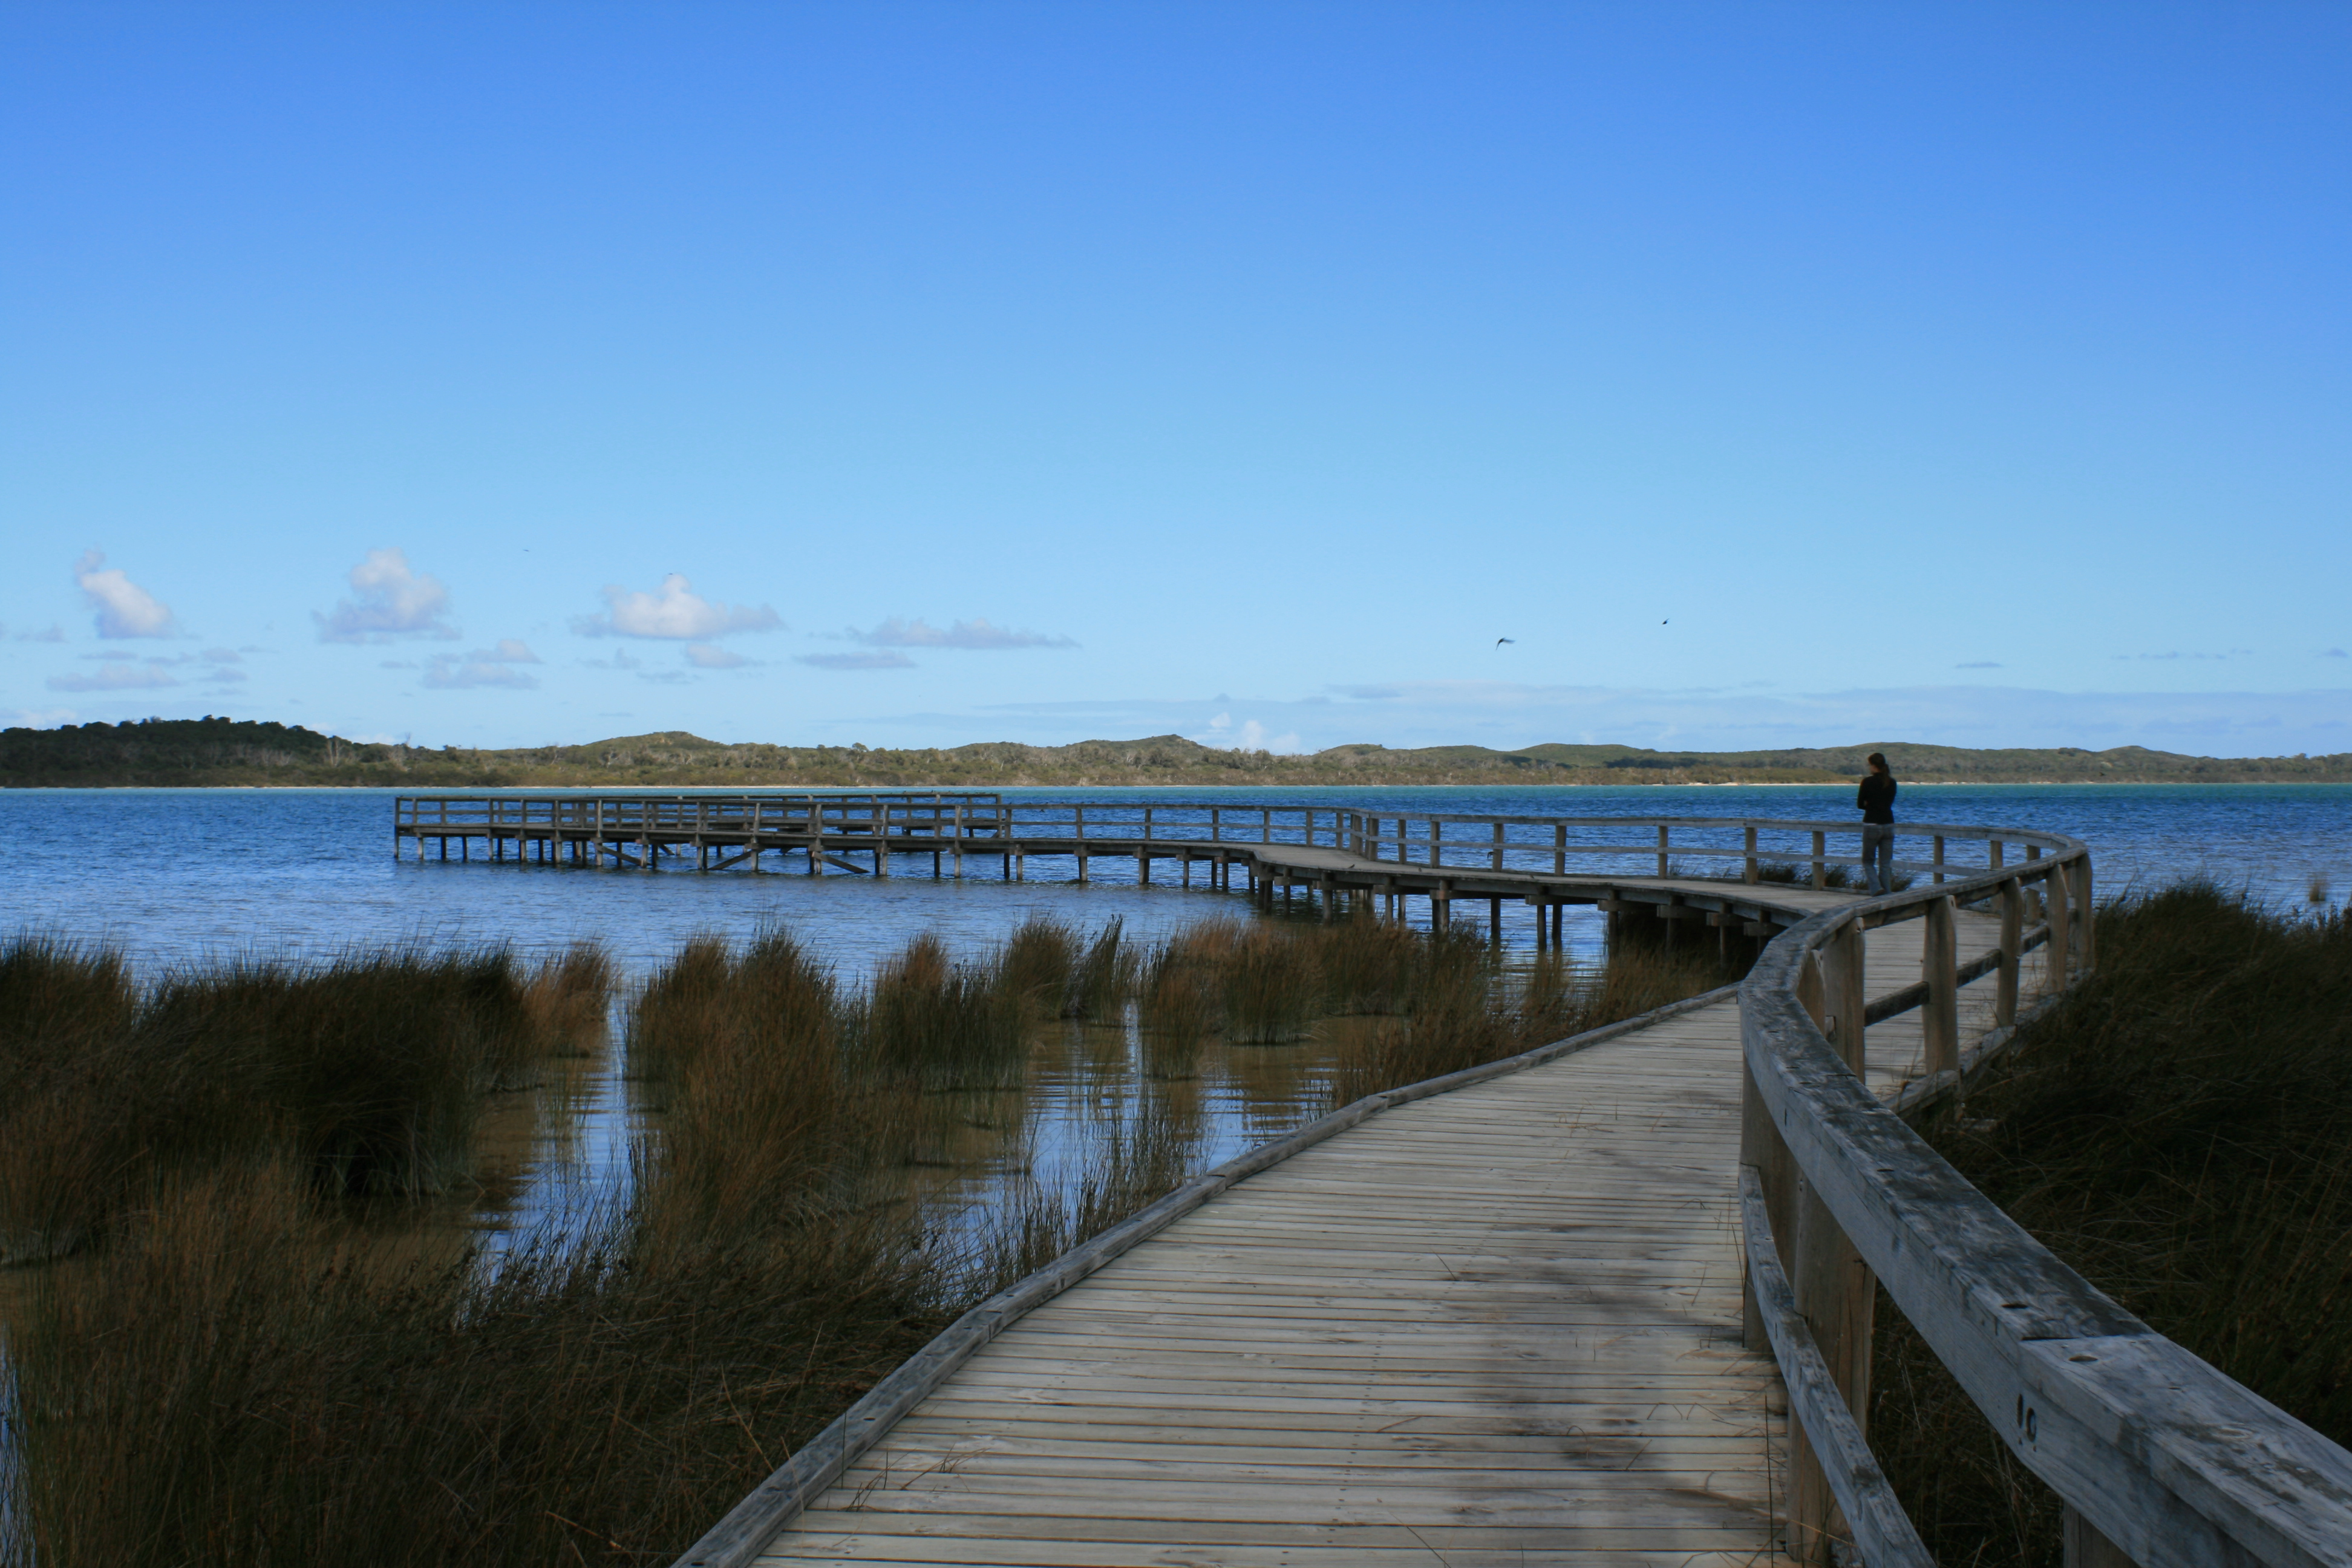 Lake Clifton in the Kwinana Peel Region